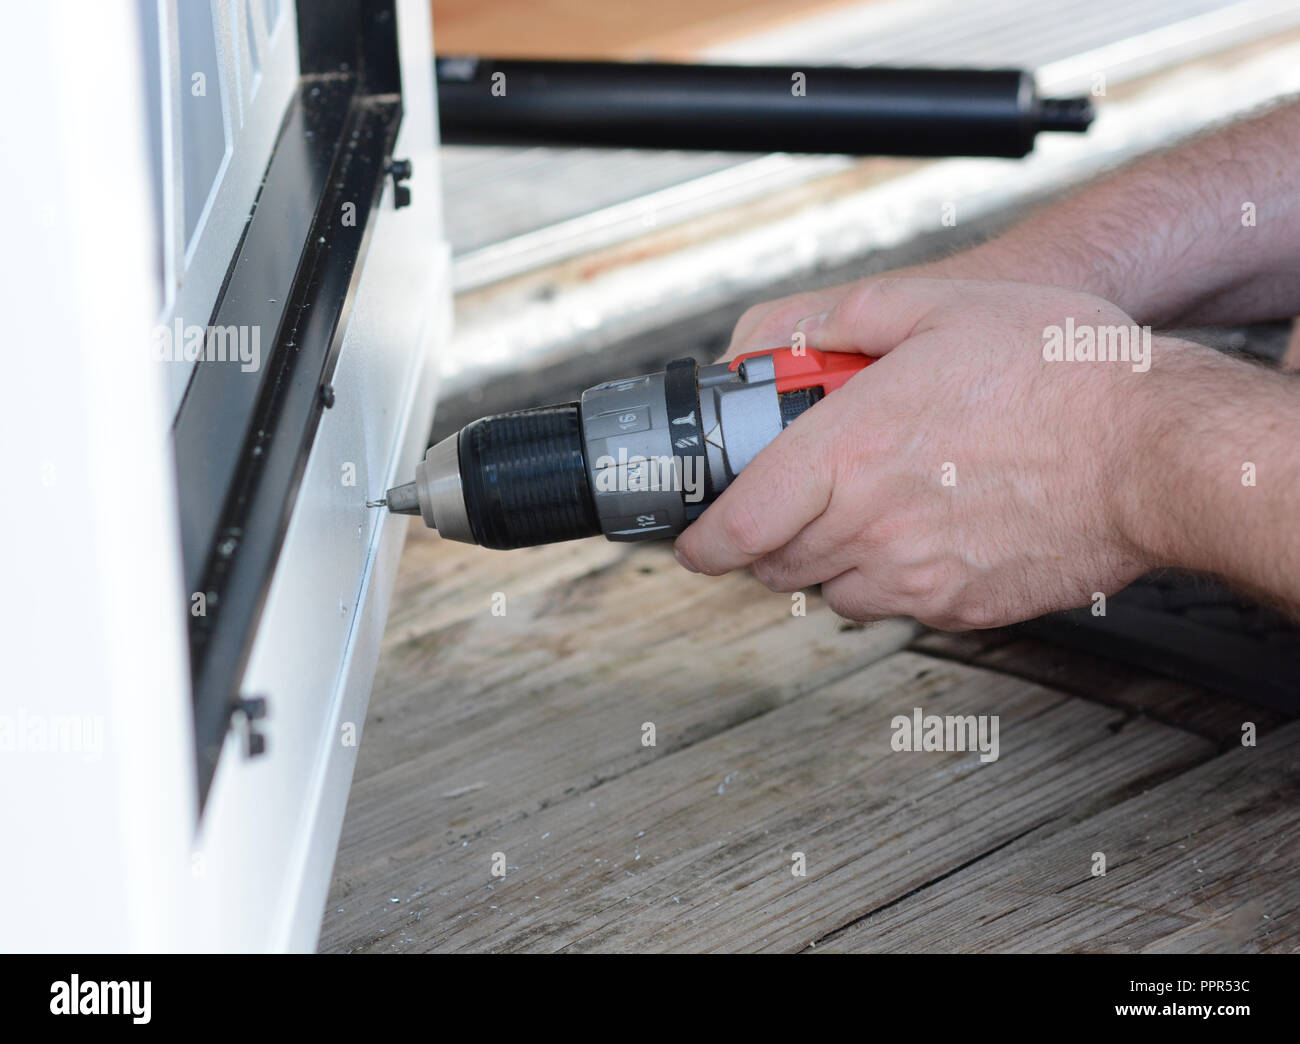 Closeup of a man's hands using a power tool to install a screen door. - Stock Image